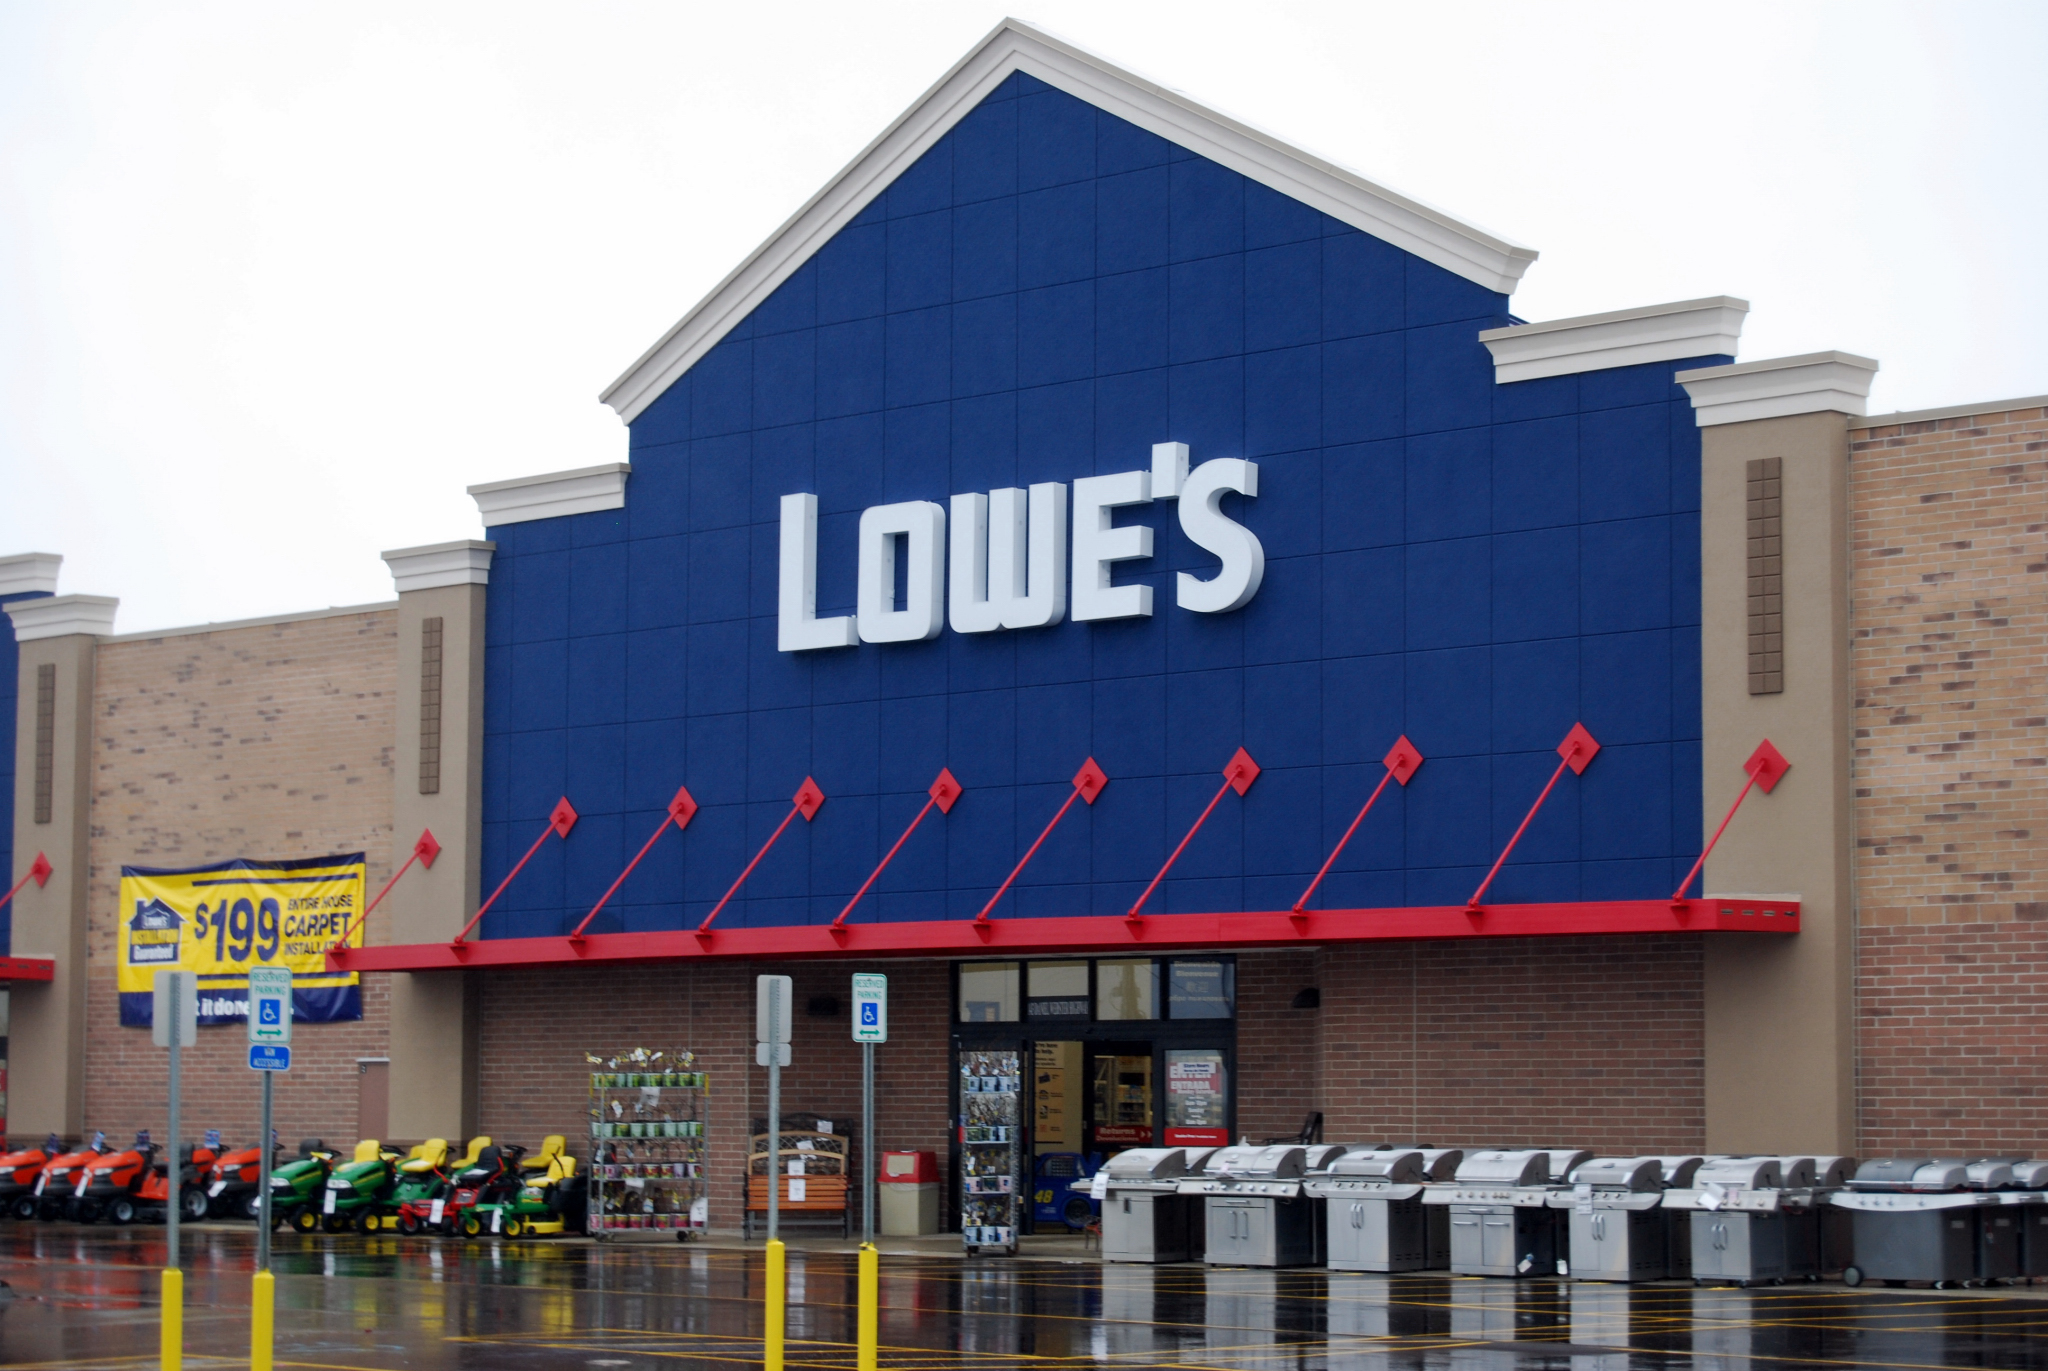 Lowe s acquiring target leases the canadian business journal for Lowes glassdoor